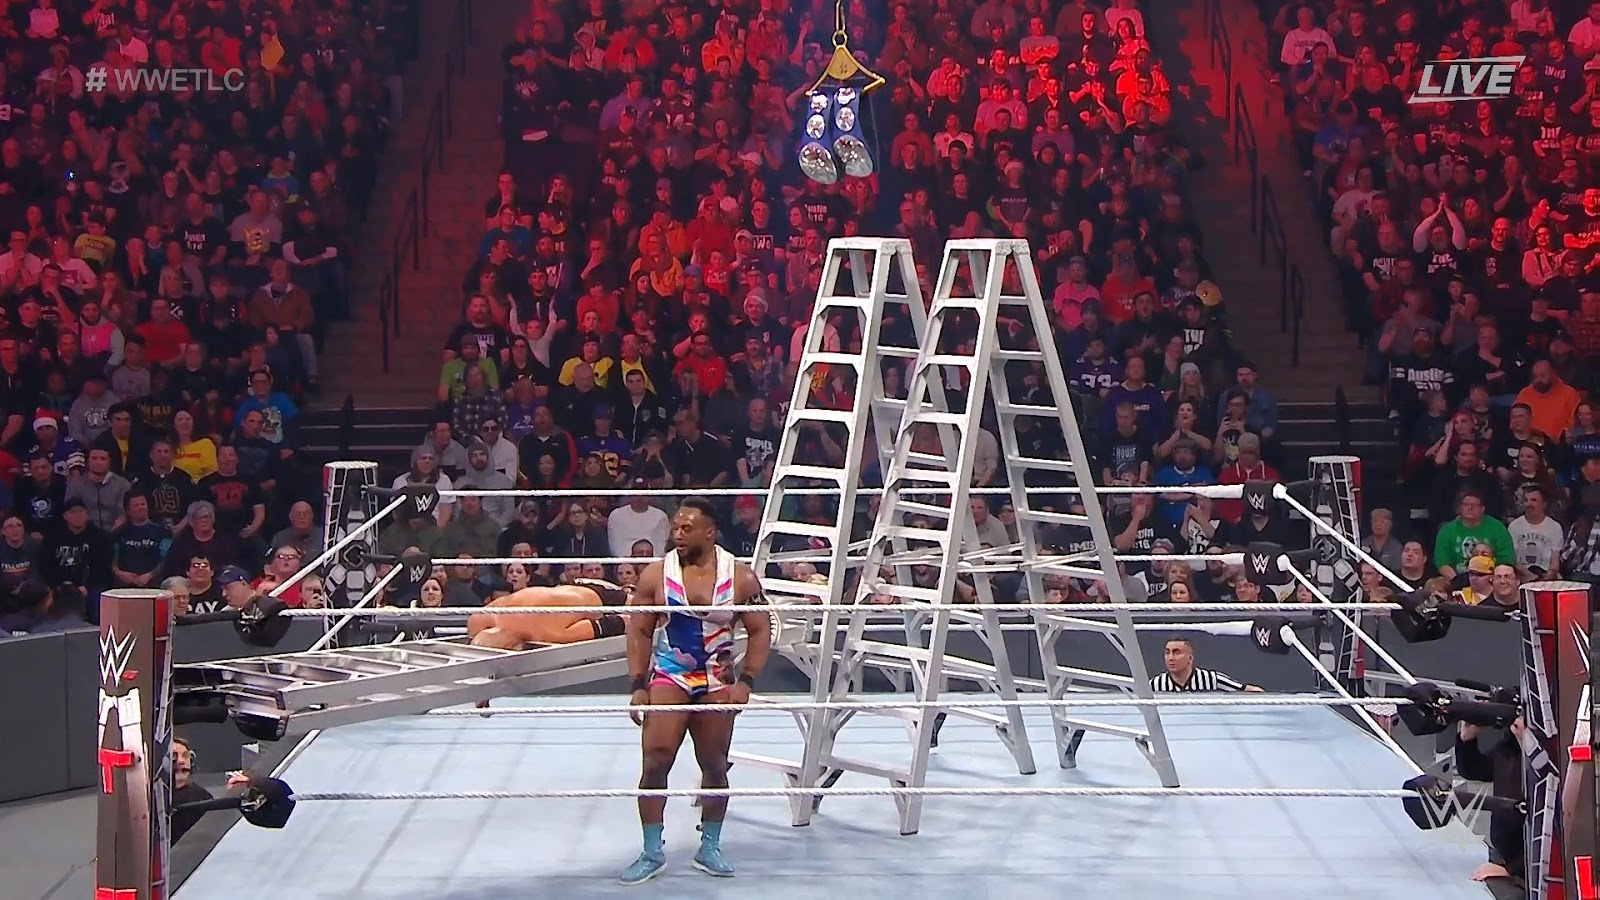 WWE+TLC+-+Tables%2C+Ladders+%26+Chair+%282019%29+HD+1080p+Latino+-+Descargatepelis.com.mkv_snapshot_00.19.36.525.jpg (1600×900)